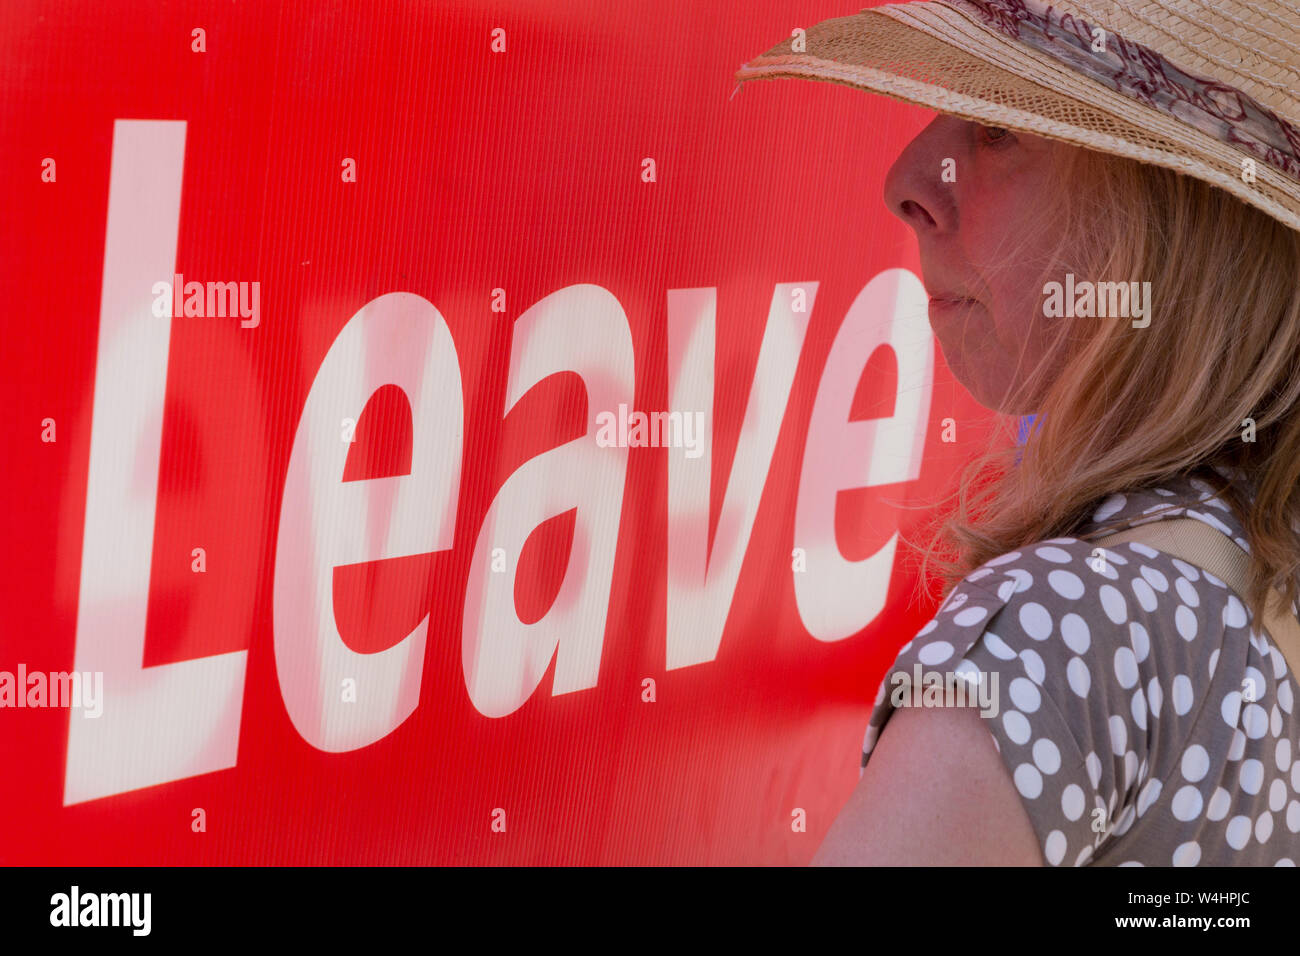 On the day that the Conservative Party elects its leader and the country's Prime Minister, Boris Johnson, Brexiteers show their support on College Green after the result, on 23rd July 2019, in Westminster, London, England. Stock Photo